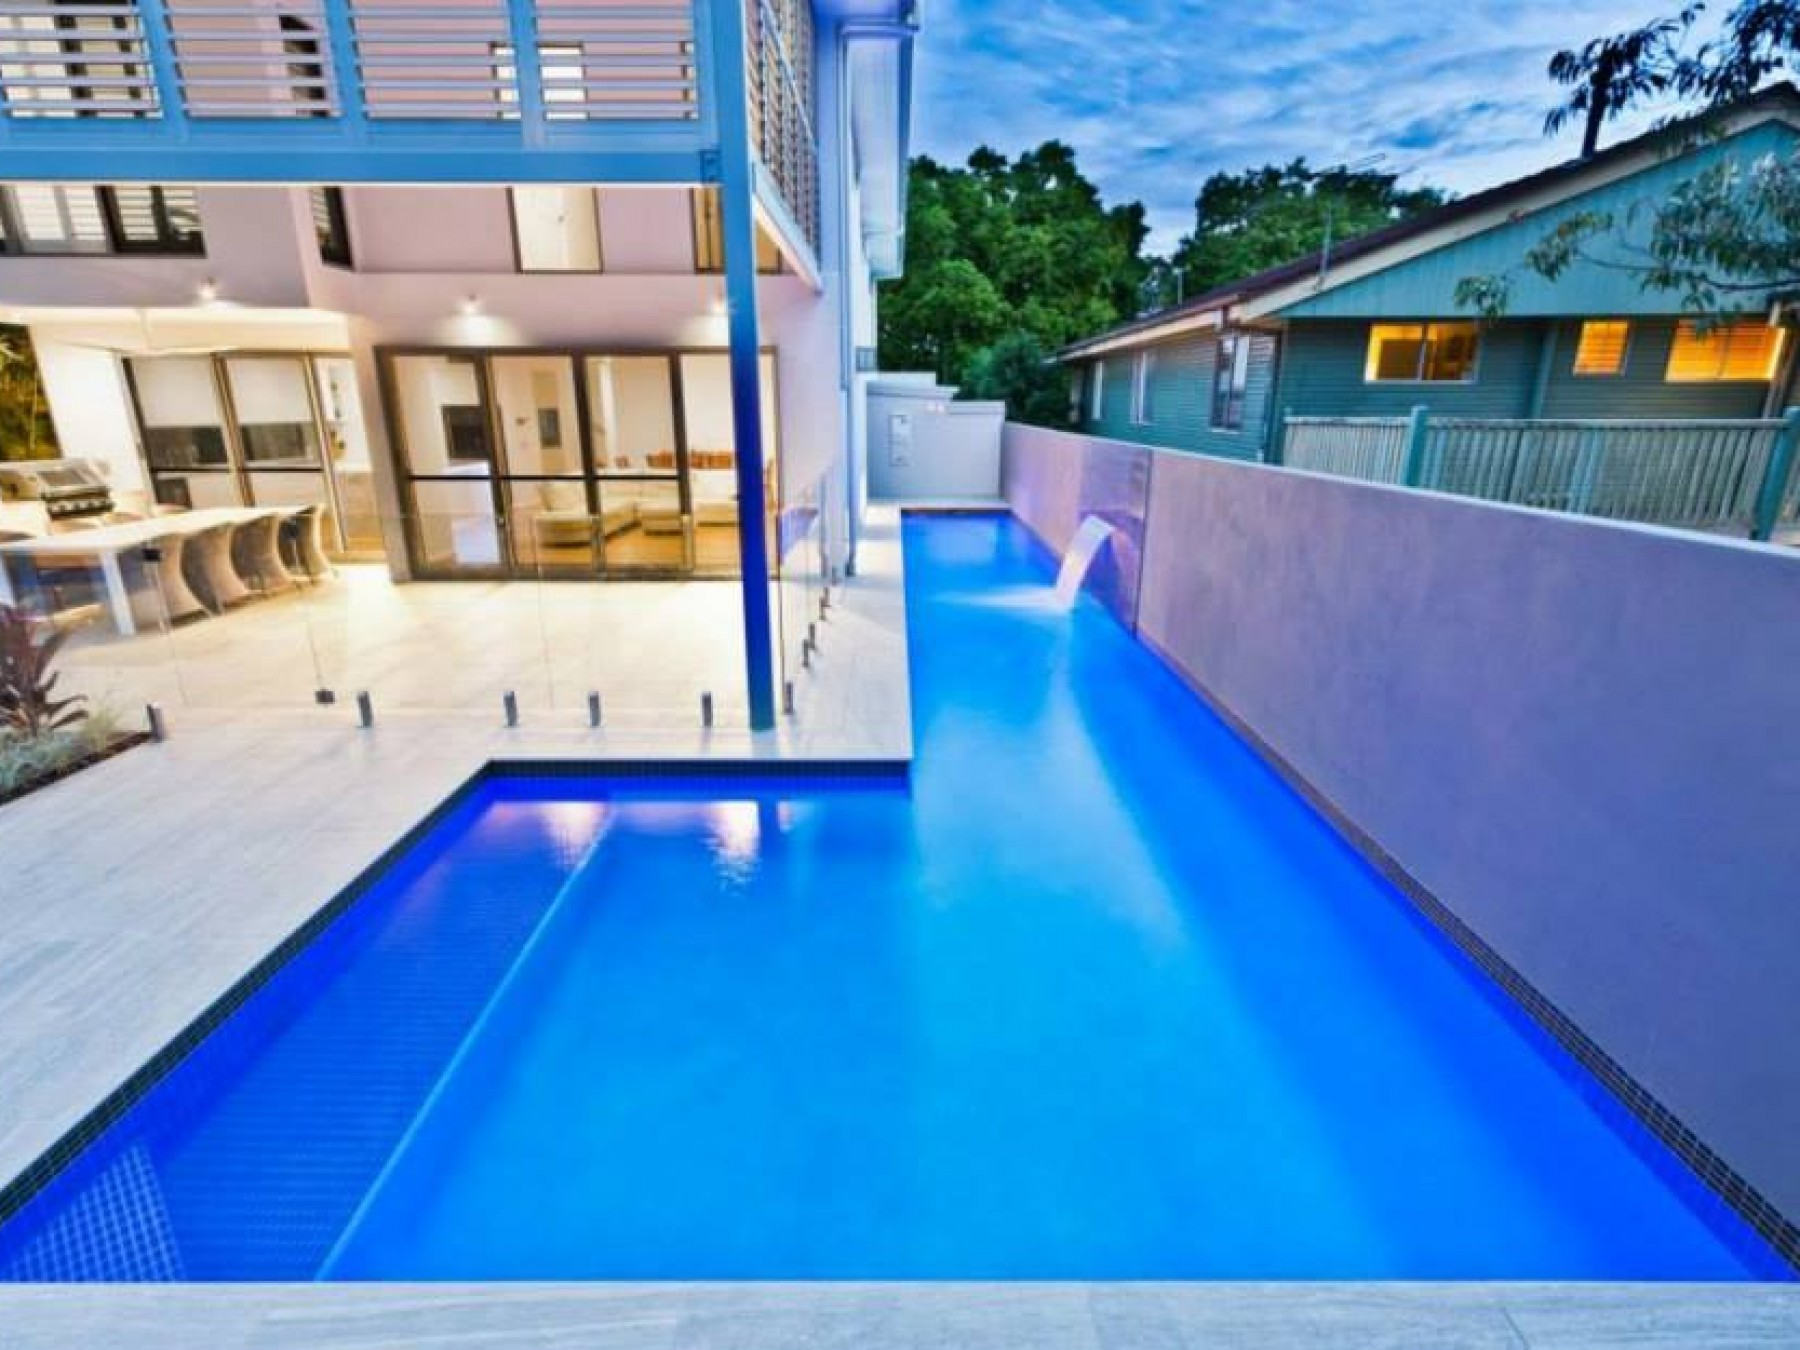 Selling or Leasing a pool in Ashgrove